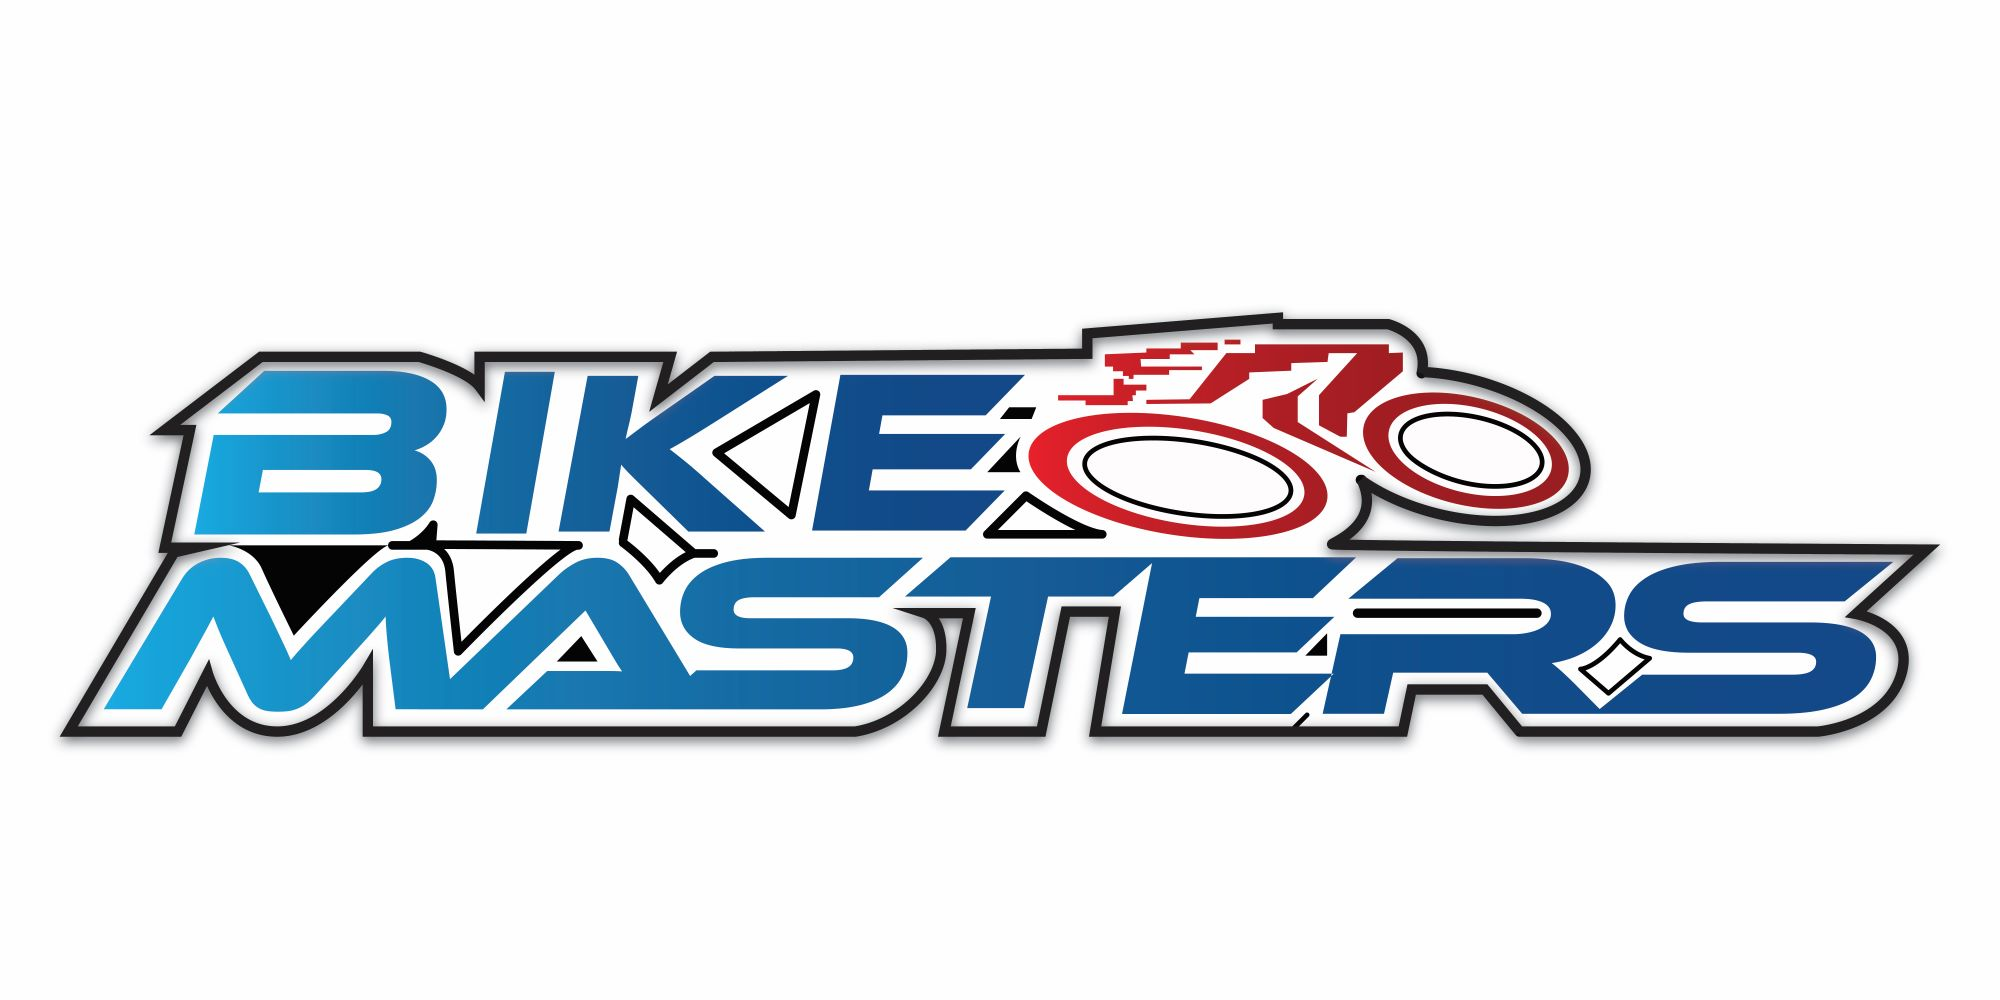 Trek Bicycle Mission (aka Bike Masters) Home Page